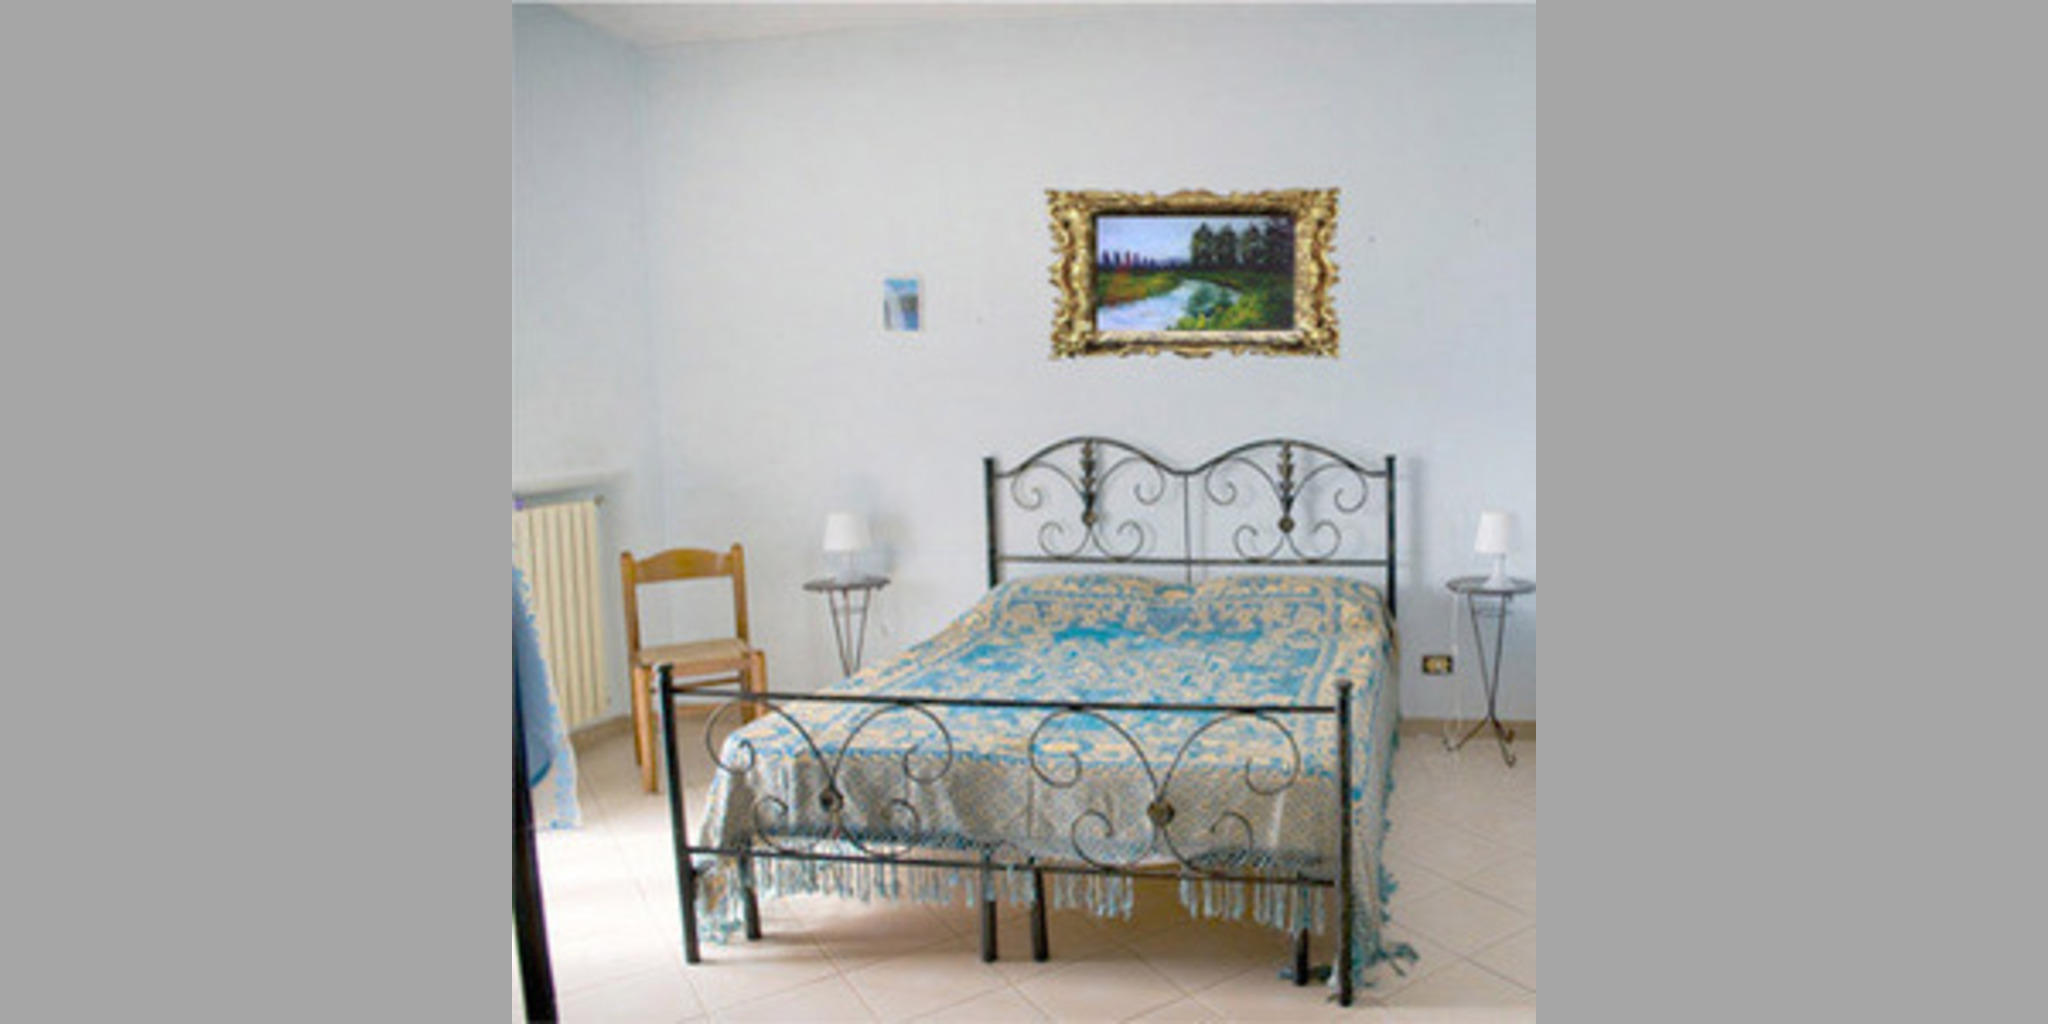 Bed & Breakfast Castellana Grotte - Castellana Grotte